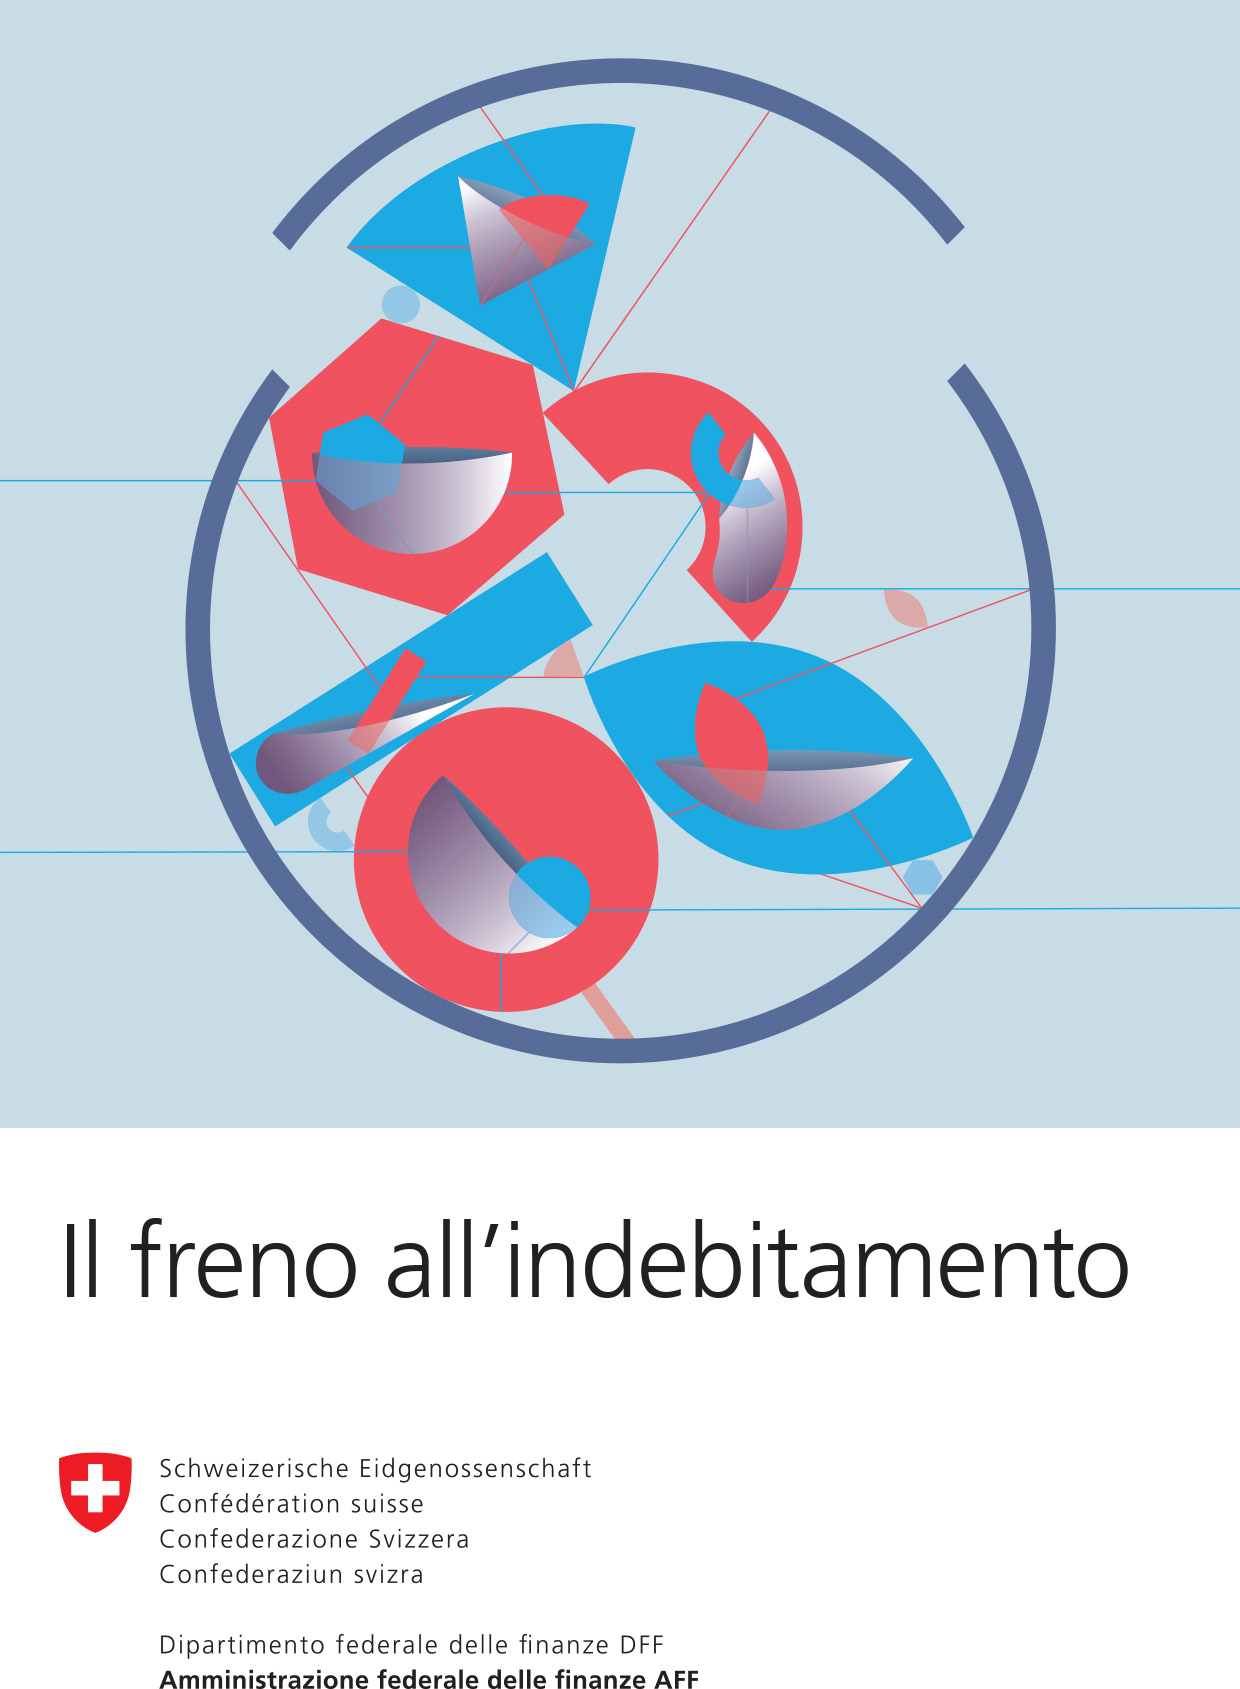 Il freno all'indebitamento